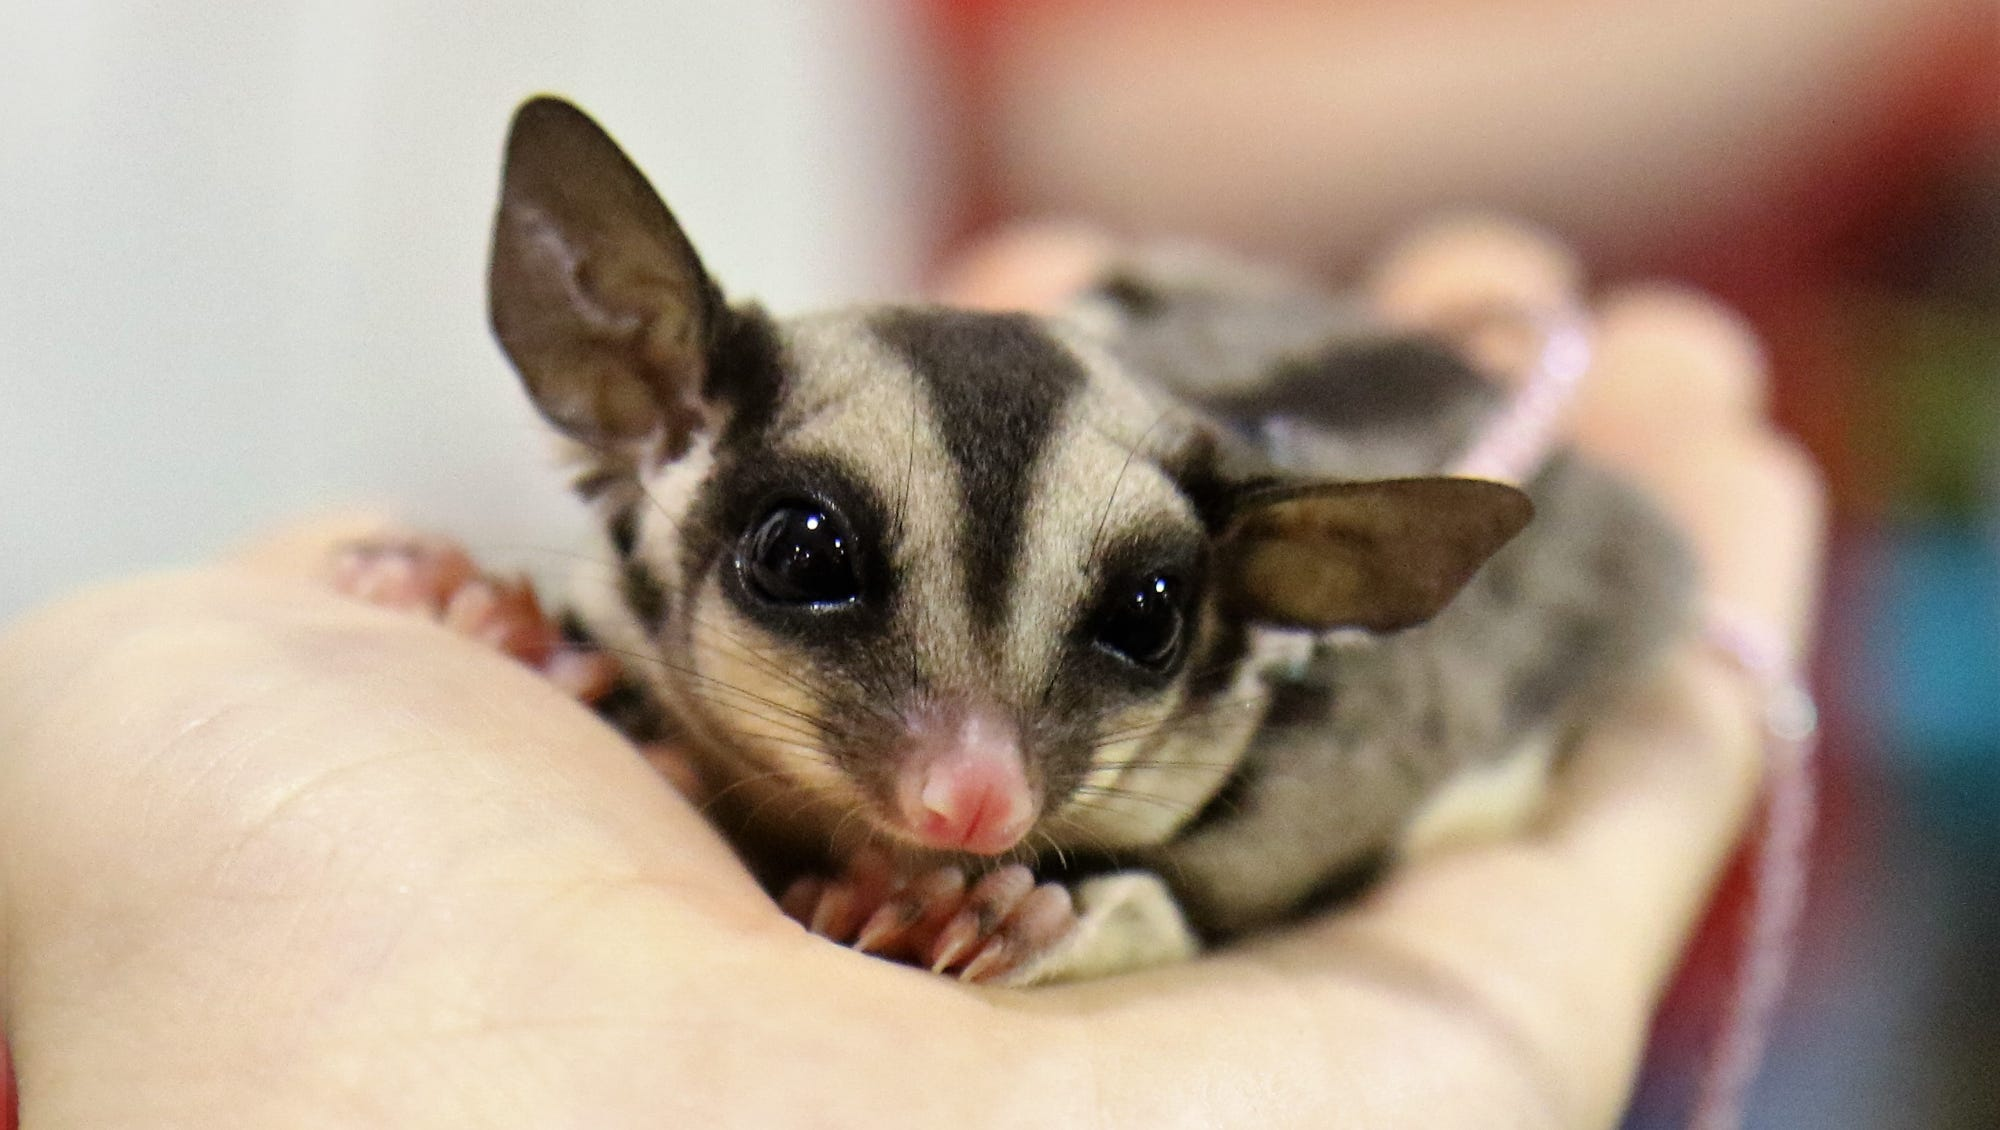 Michigan firefighters save sugar gliders from burning home